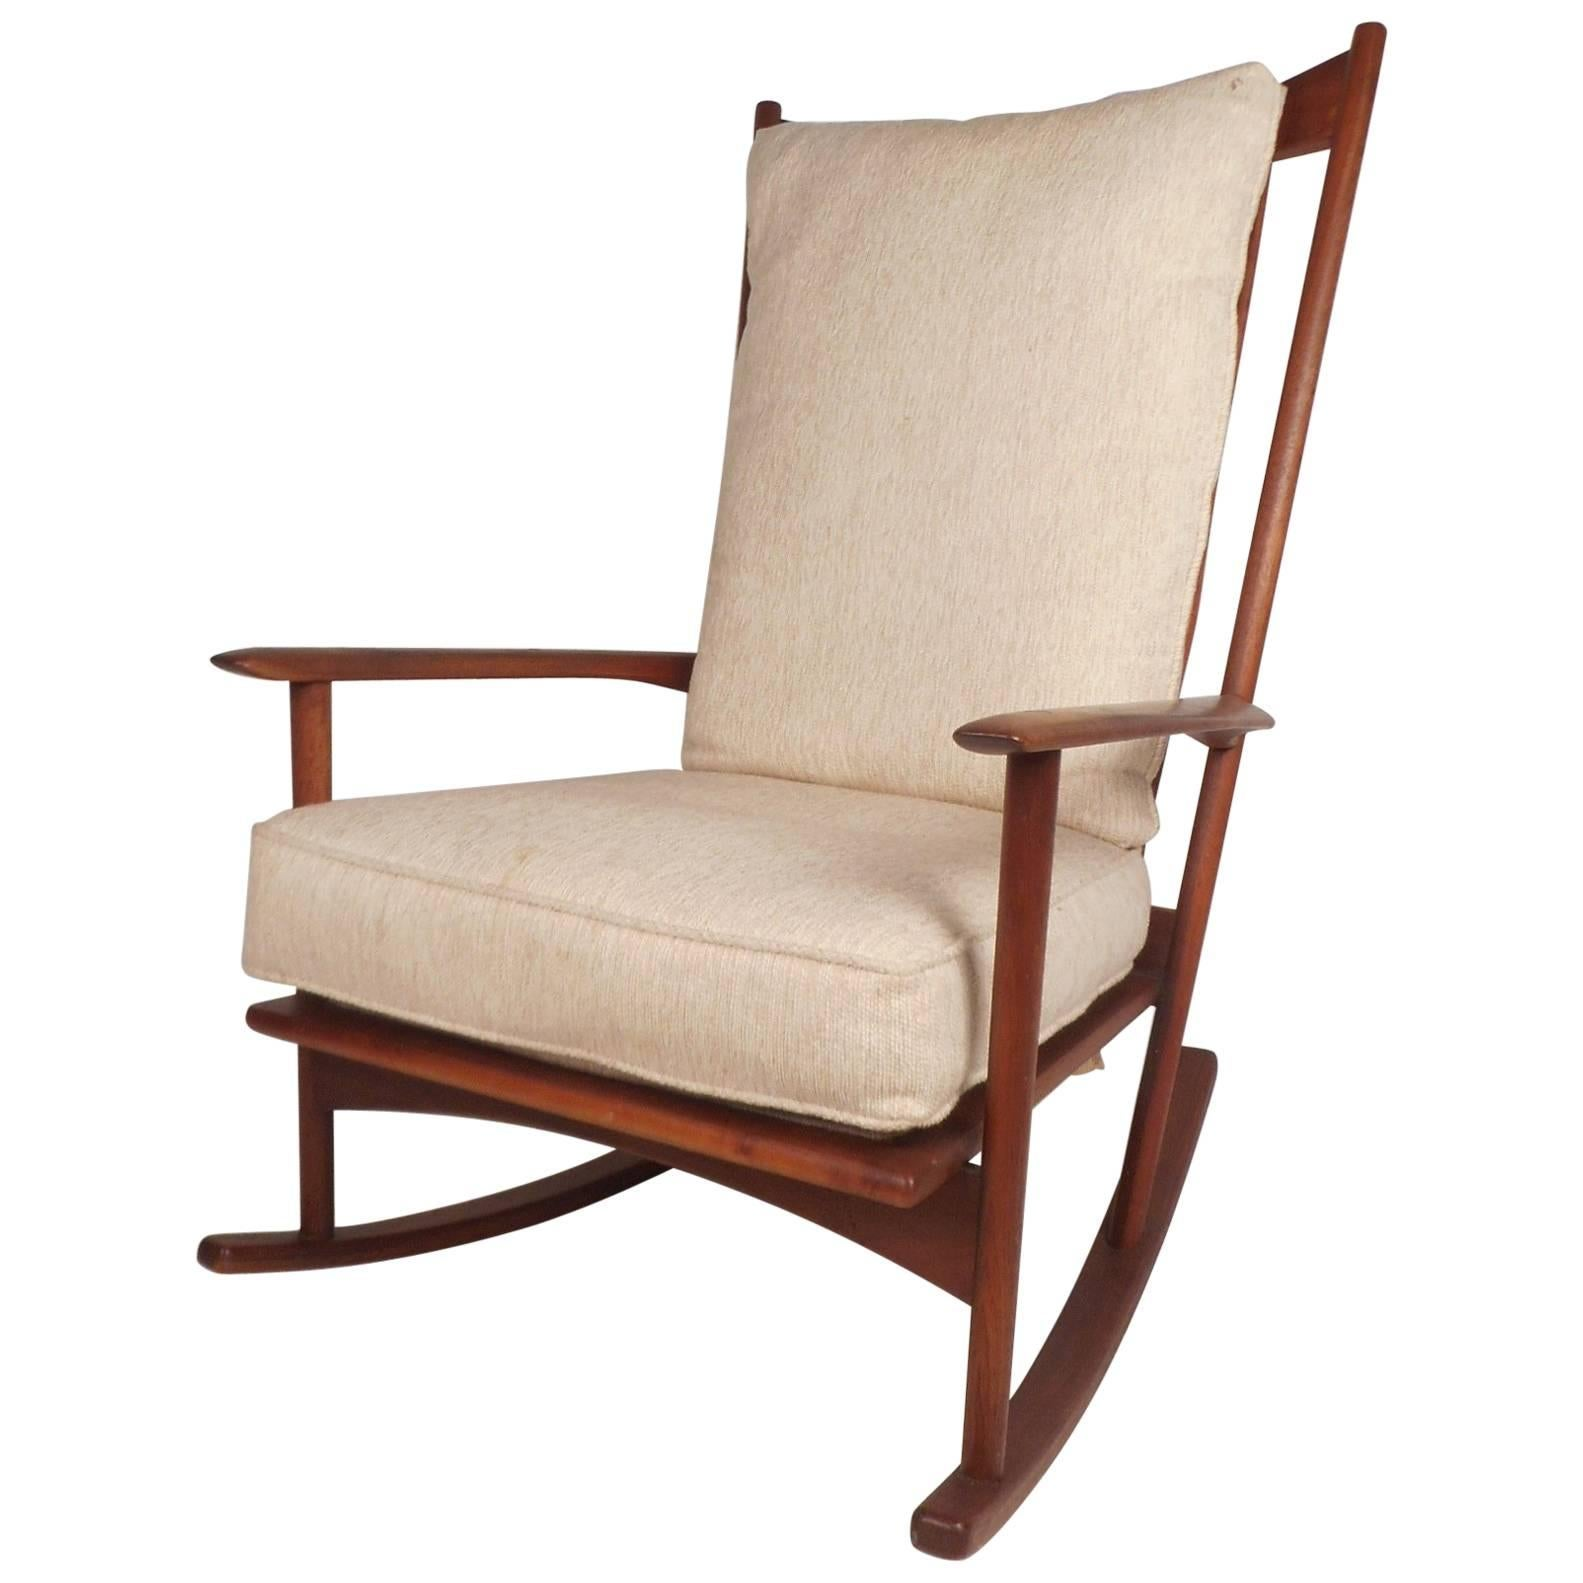 danish modern rocking chair kids camping walnut by selig for sale at 1stdibs